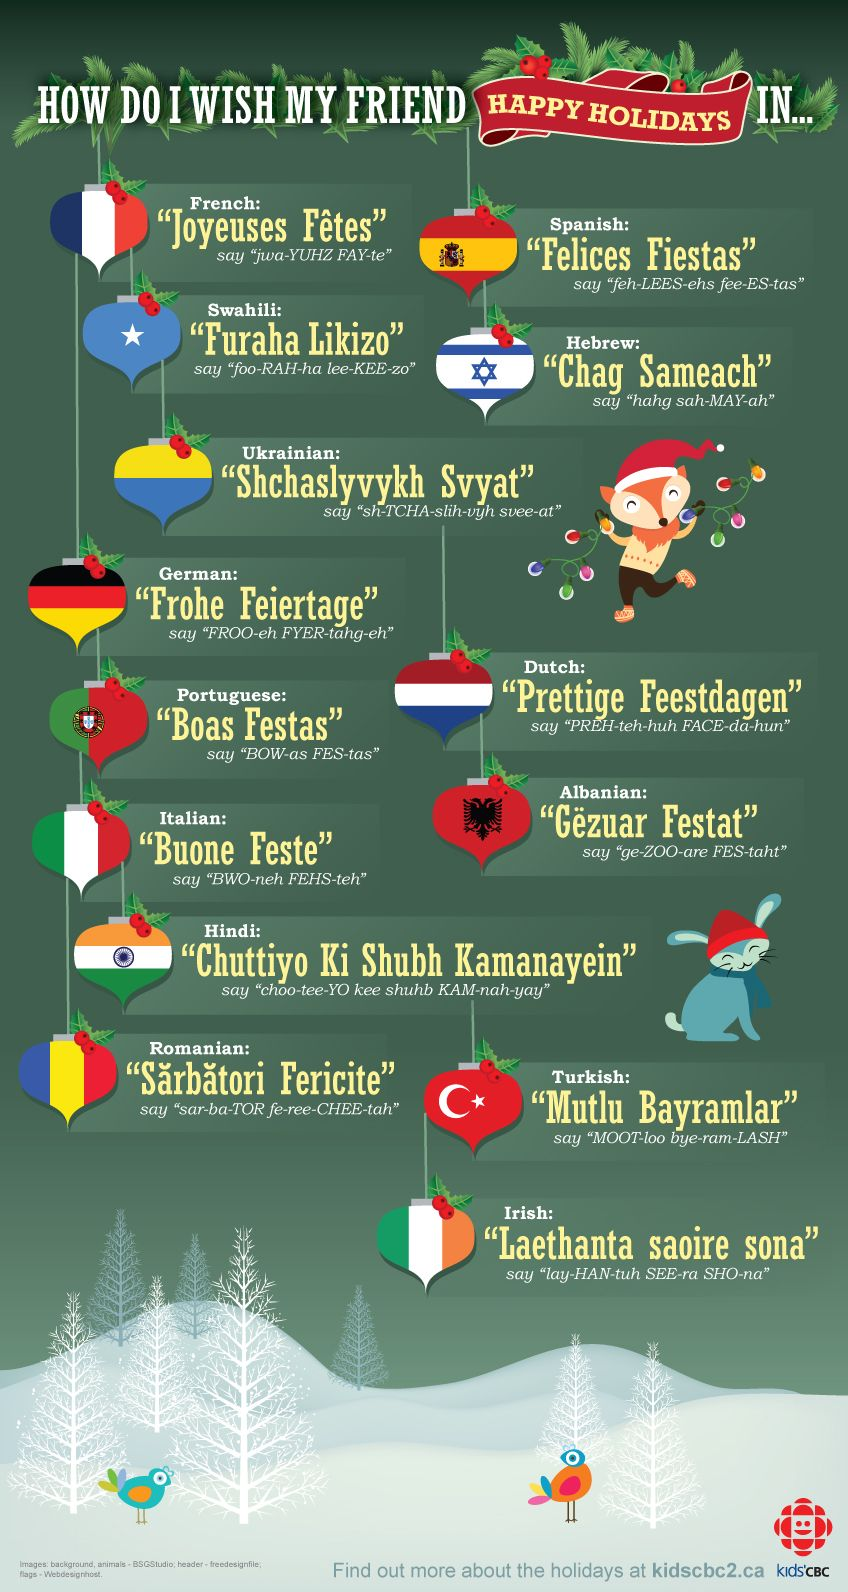 Frohe Weihnachten Hindi.How To Wish Your Friends Happy Holidays In 16 Different